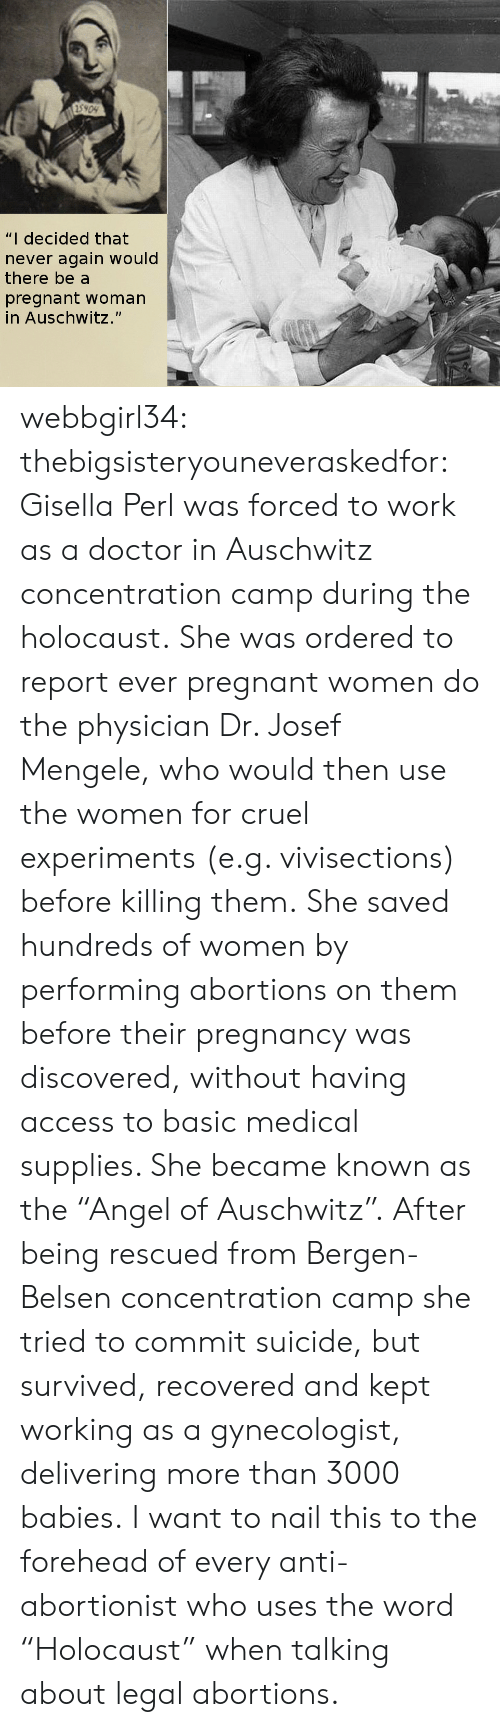 """Auschwitz: 5909  """"I decided that  never again would  there be a  pregnant woman  in Auschwitz."""" webbgirl34:  thebigsisteryouneveraskedfor:  Gisella Perl was forced to work as a doctor in Auschwitz concentration camp during the holocaust. She was ordered to report ever pregnant women do the physician Dr. Josef Mengele, who would then use the women for cruel experiments (e.g. vivisections) before killing them. She saved hundreds of women by performing abortions on them before their pregnancy was discovered, without having access to basic medical supplies. She became known as the """"Angel of Auschwitz"""". After being rescued from Bergen-Belsen concentration camp she tried to commit suicide, but survived, recovered and kept working as a gynecologist, delivering more than 3000 babies.  I want to nail this to the forehead of every anti-abortionist who uses the word """"Holocaust"""" when talking about legal abortions."""